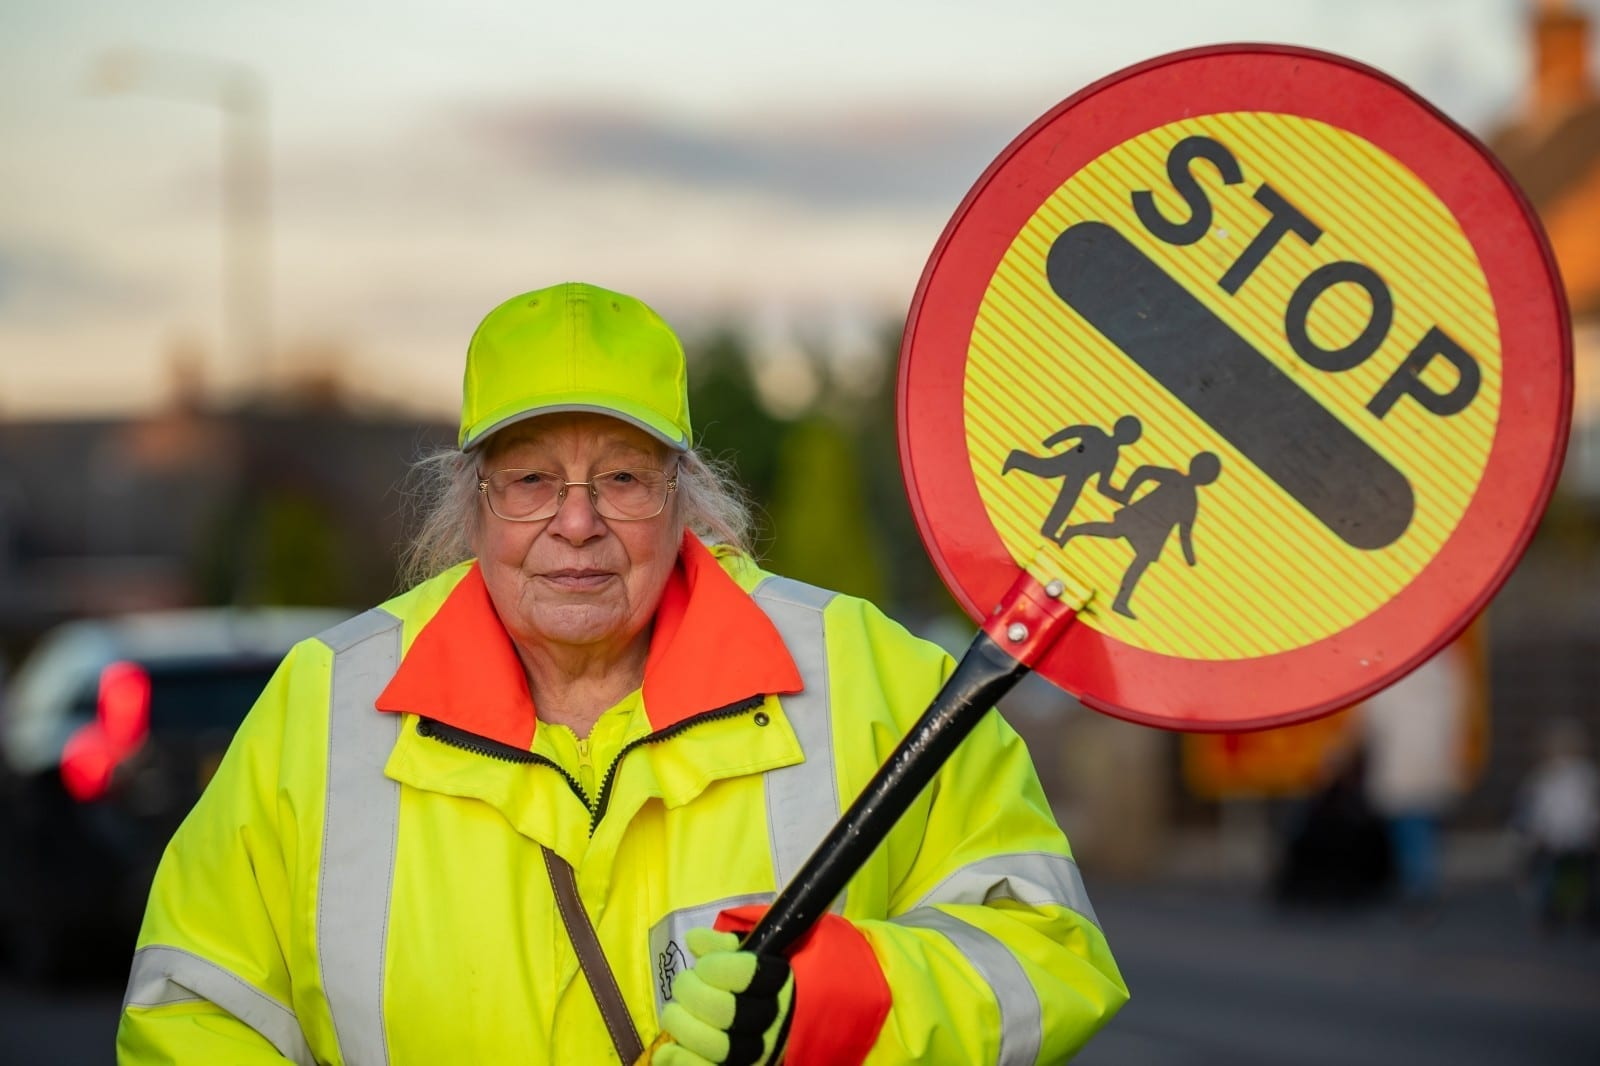 'It's The Best Job In The World!' – Britain's Longest Serving Lollipop Lady Has No Plans To Hang Up Her Stick – After 50 YEARS Patrolling The Same Stretch Of Road